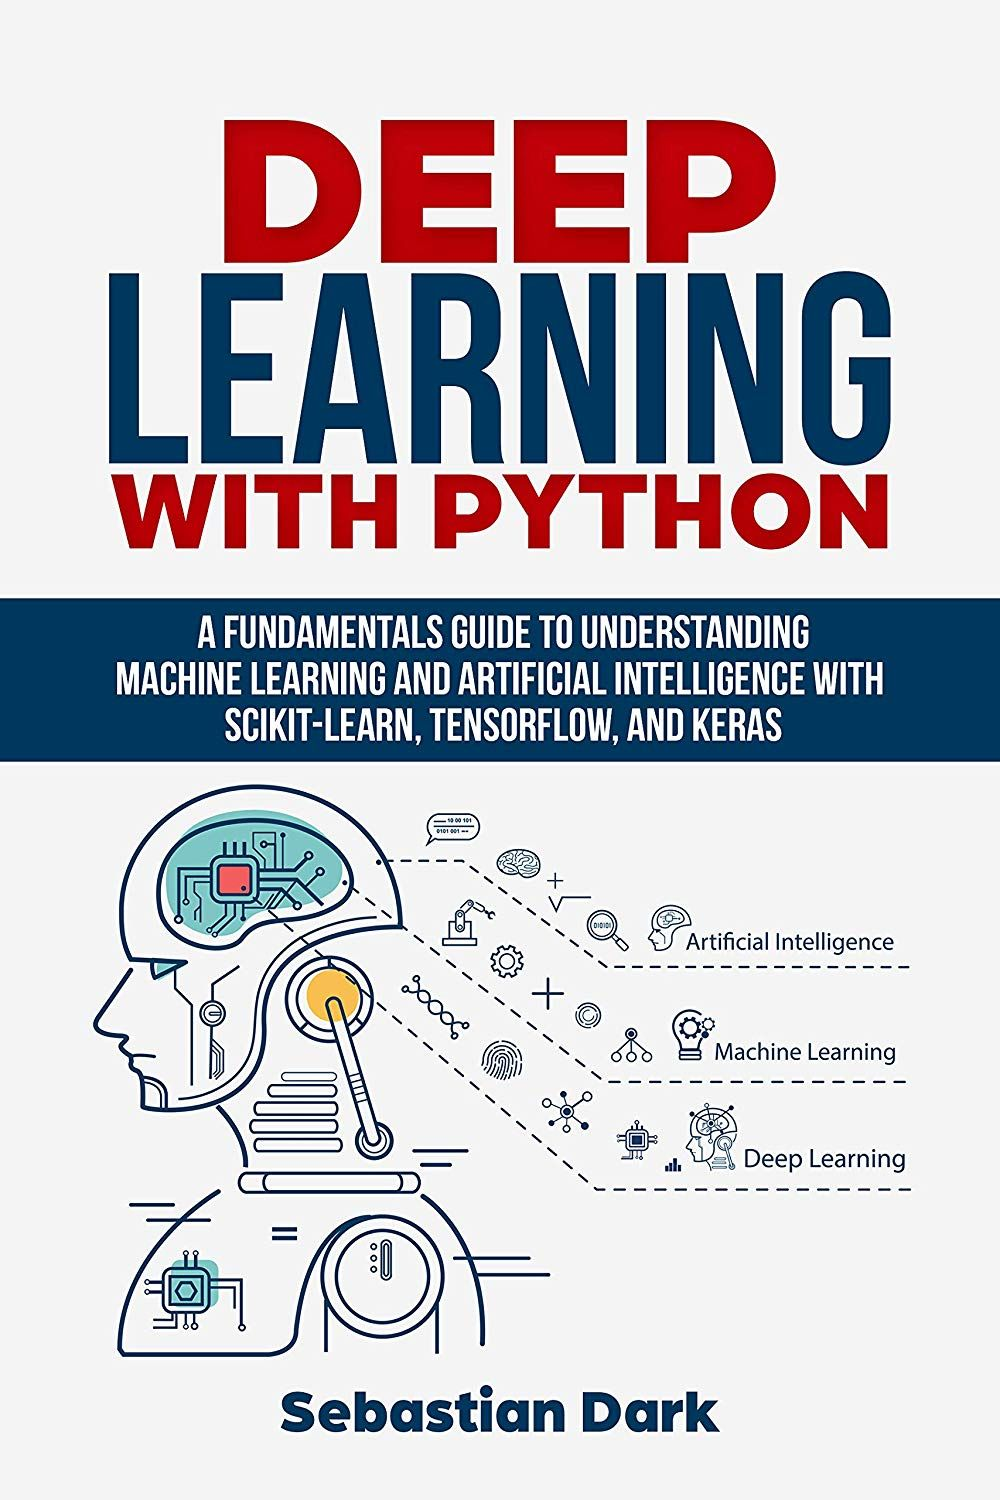 Deep Learning With Python A Fundamentals Guide To Understanding Mach Artificial Intelligence Technology Machine Learning Artificial Intelligence Deep Learning